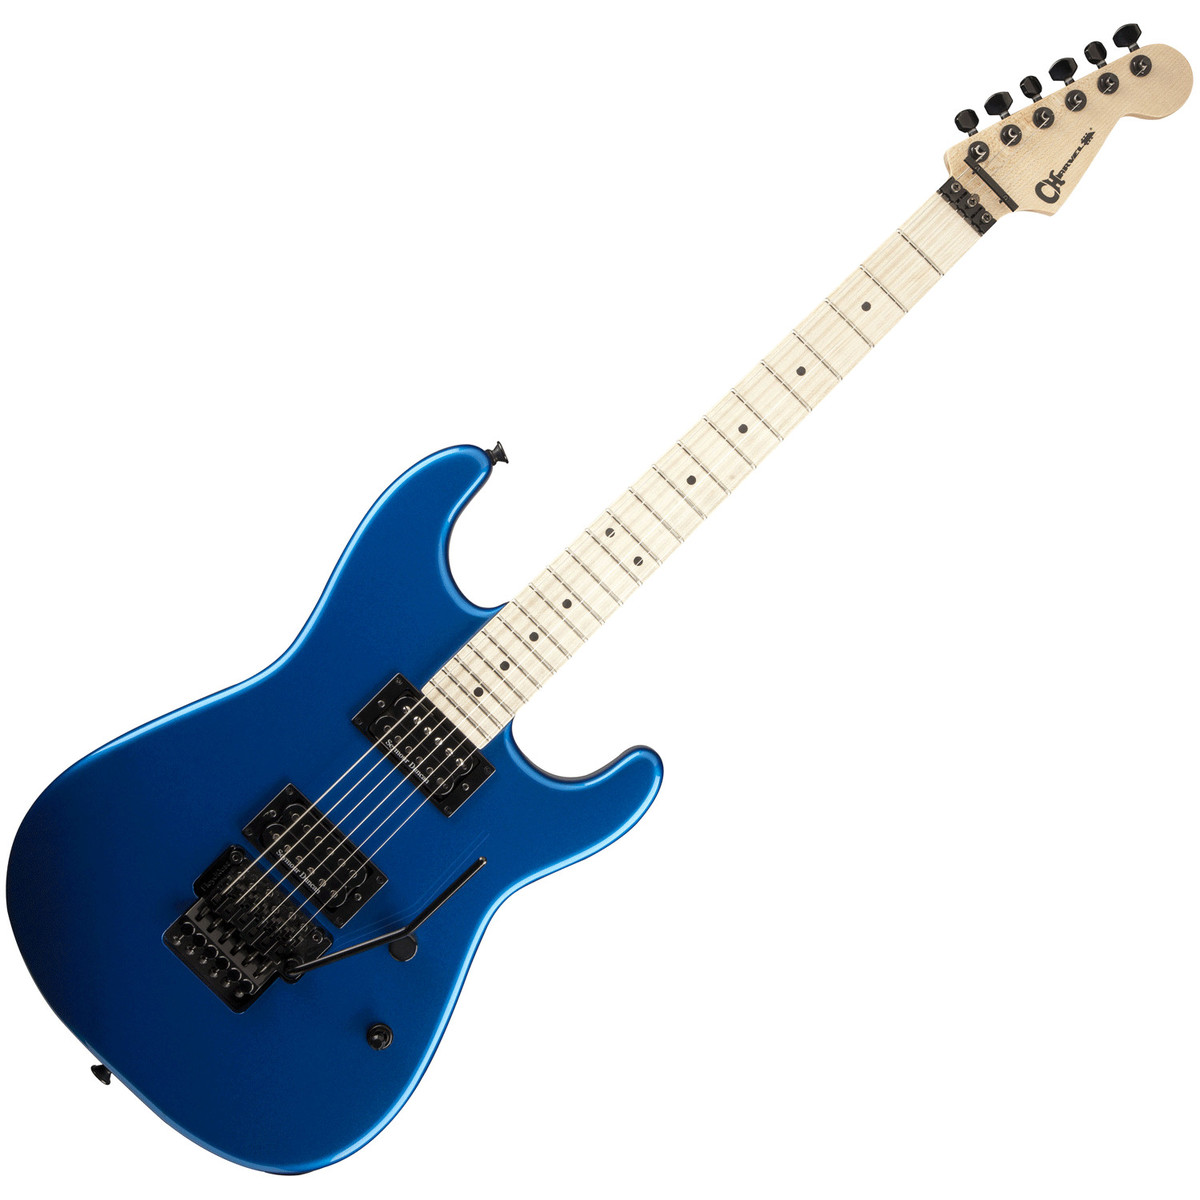 Charvel San Dimas : disc charvel san dimas style 1 hh electric guitar candy apple blue at gear4music ~ Hamham.info Haus und Dekorationen